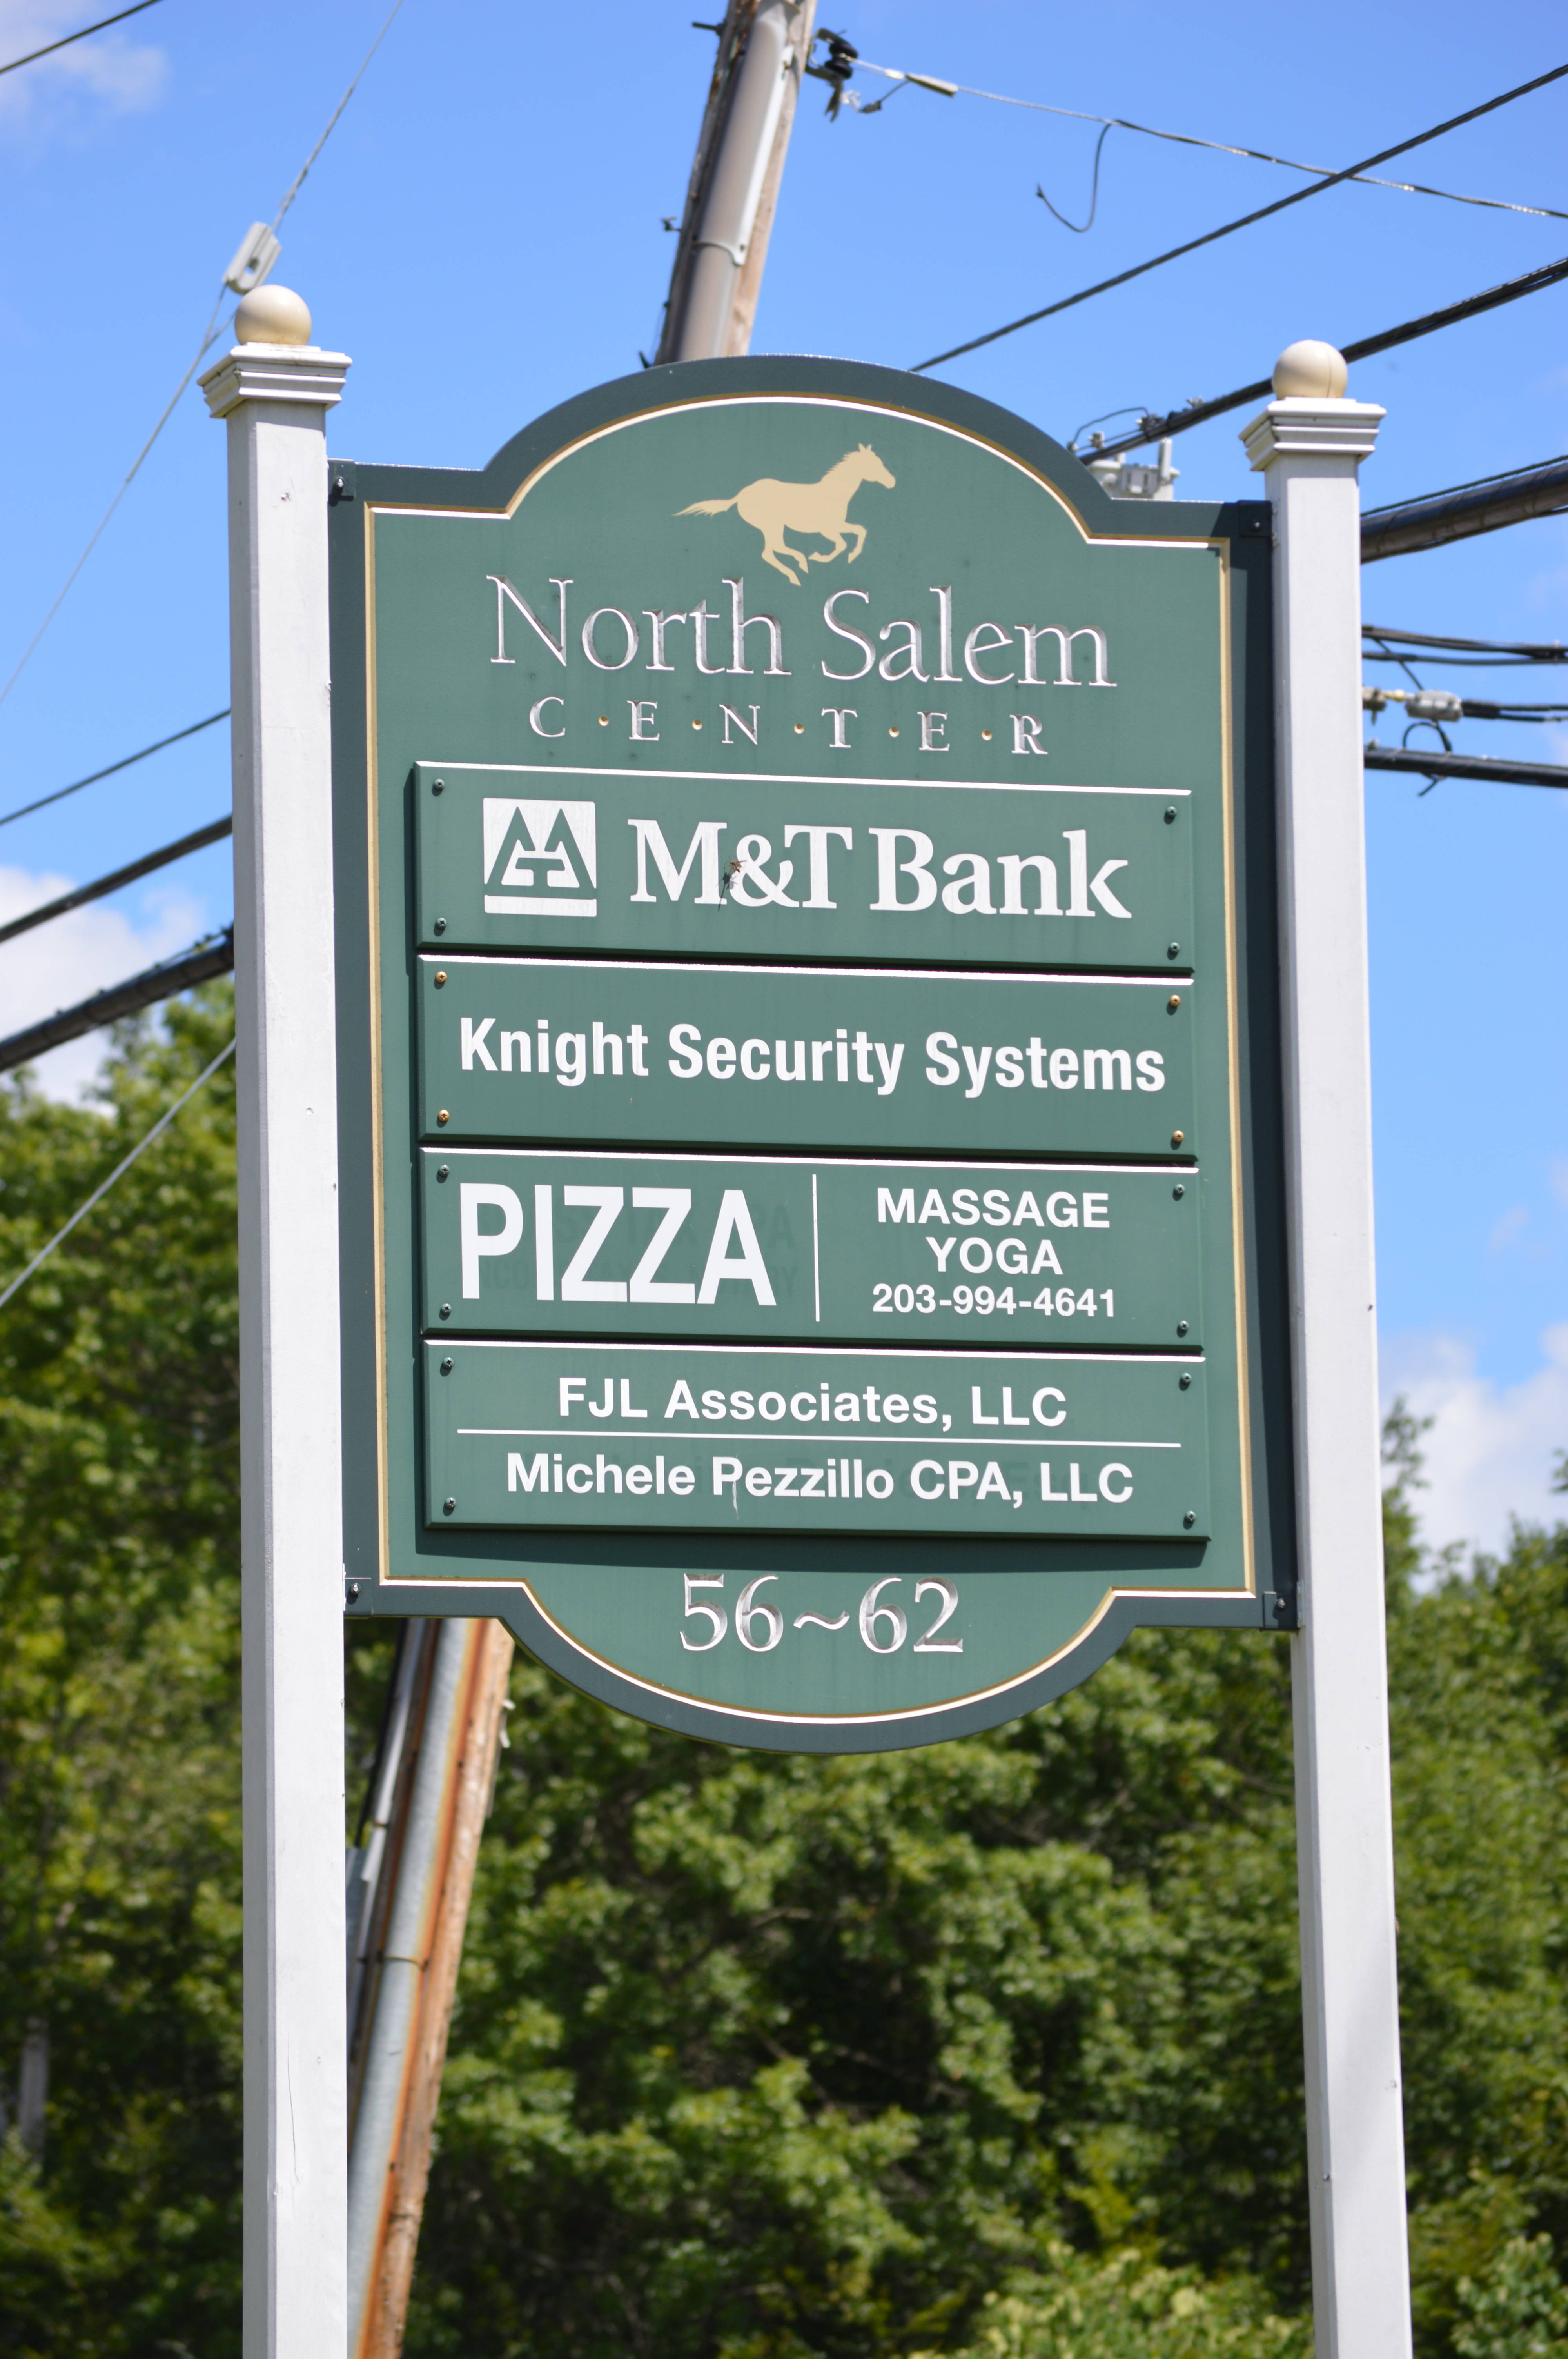 North Salem 14 Year Old Boy Missing Since Tuesday: Planning Board Tackles Signage Code Revisions